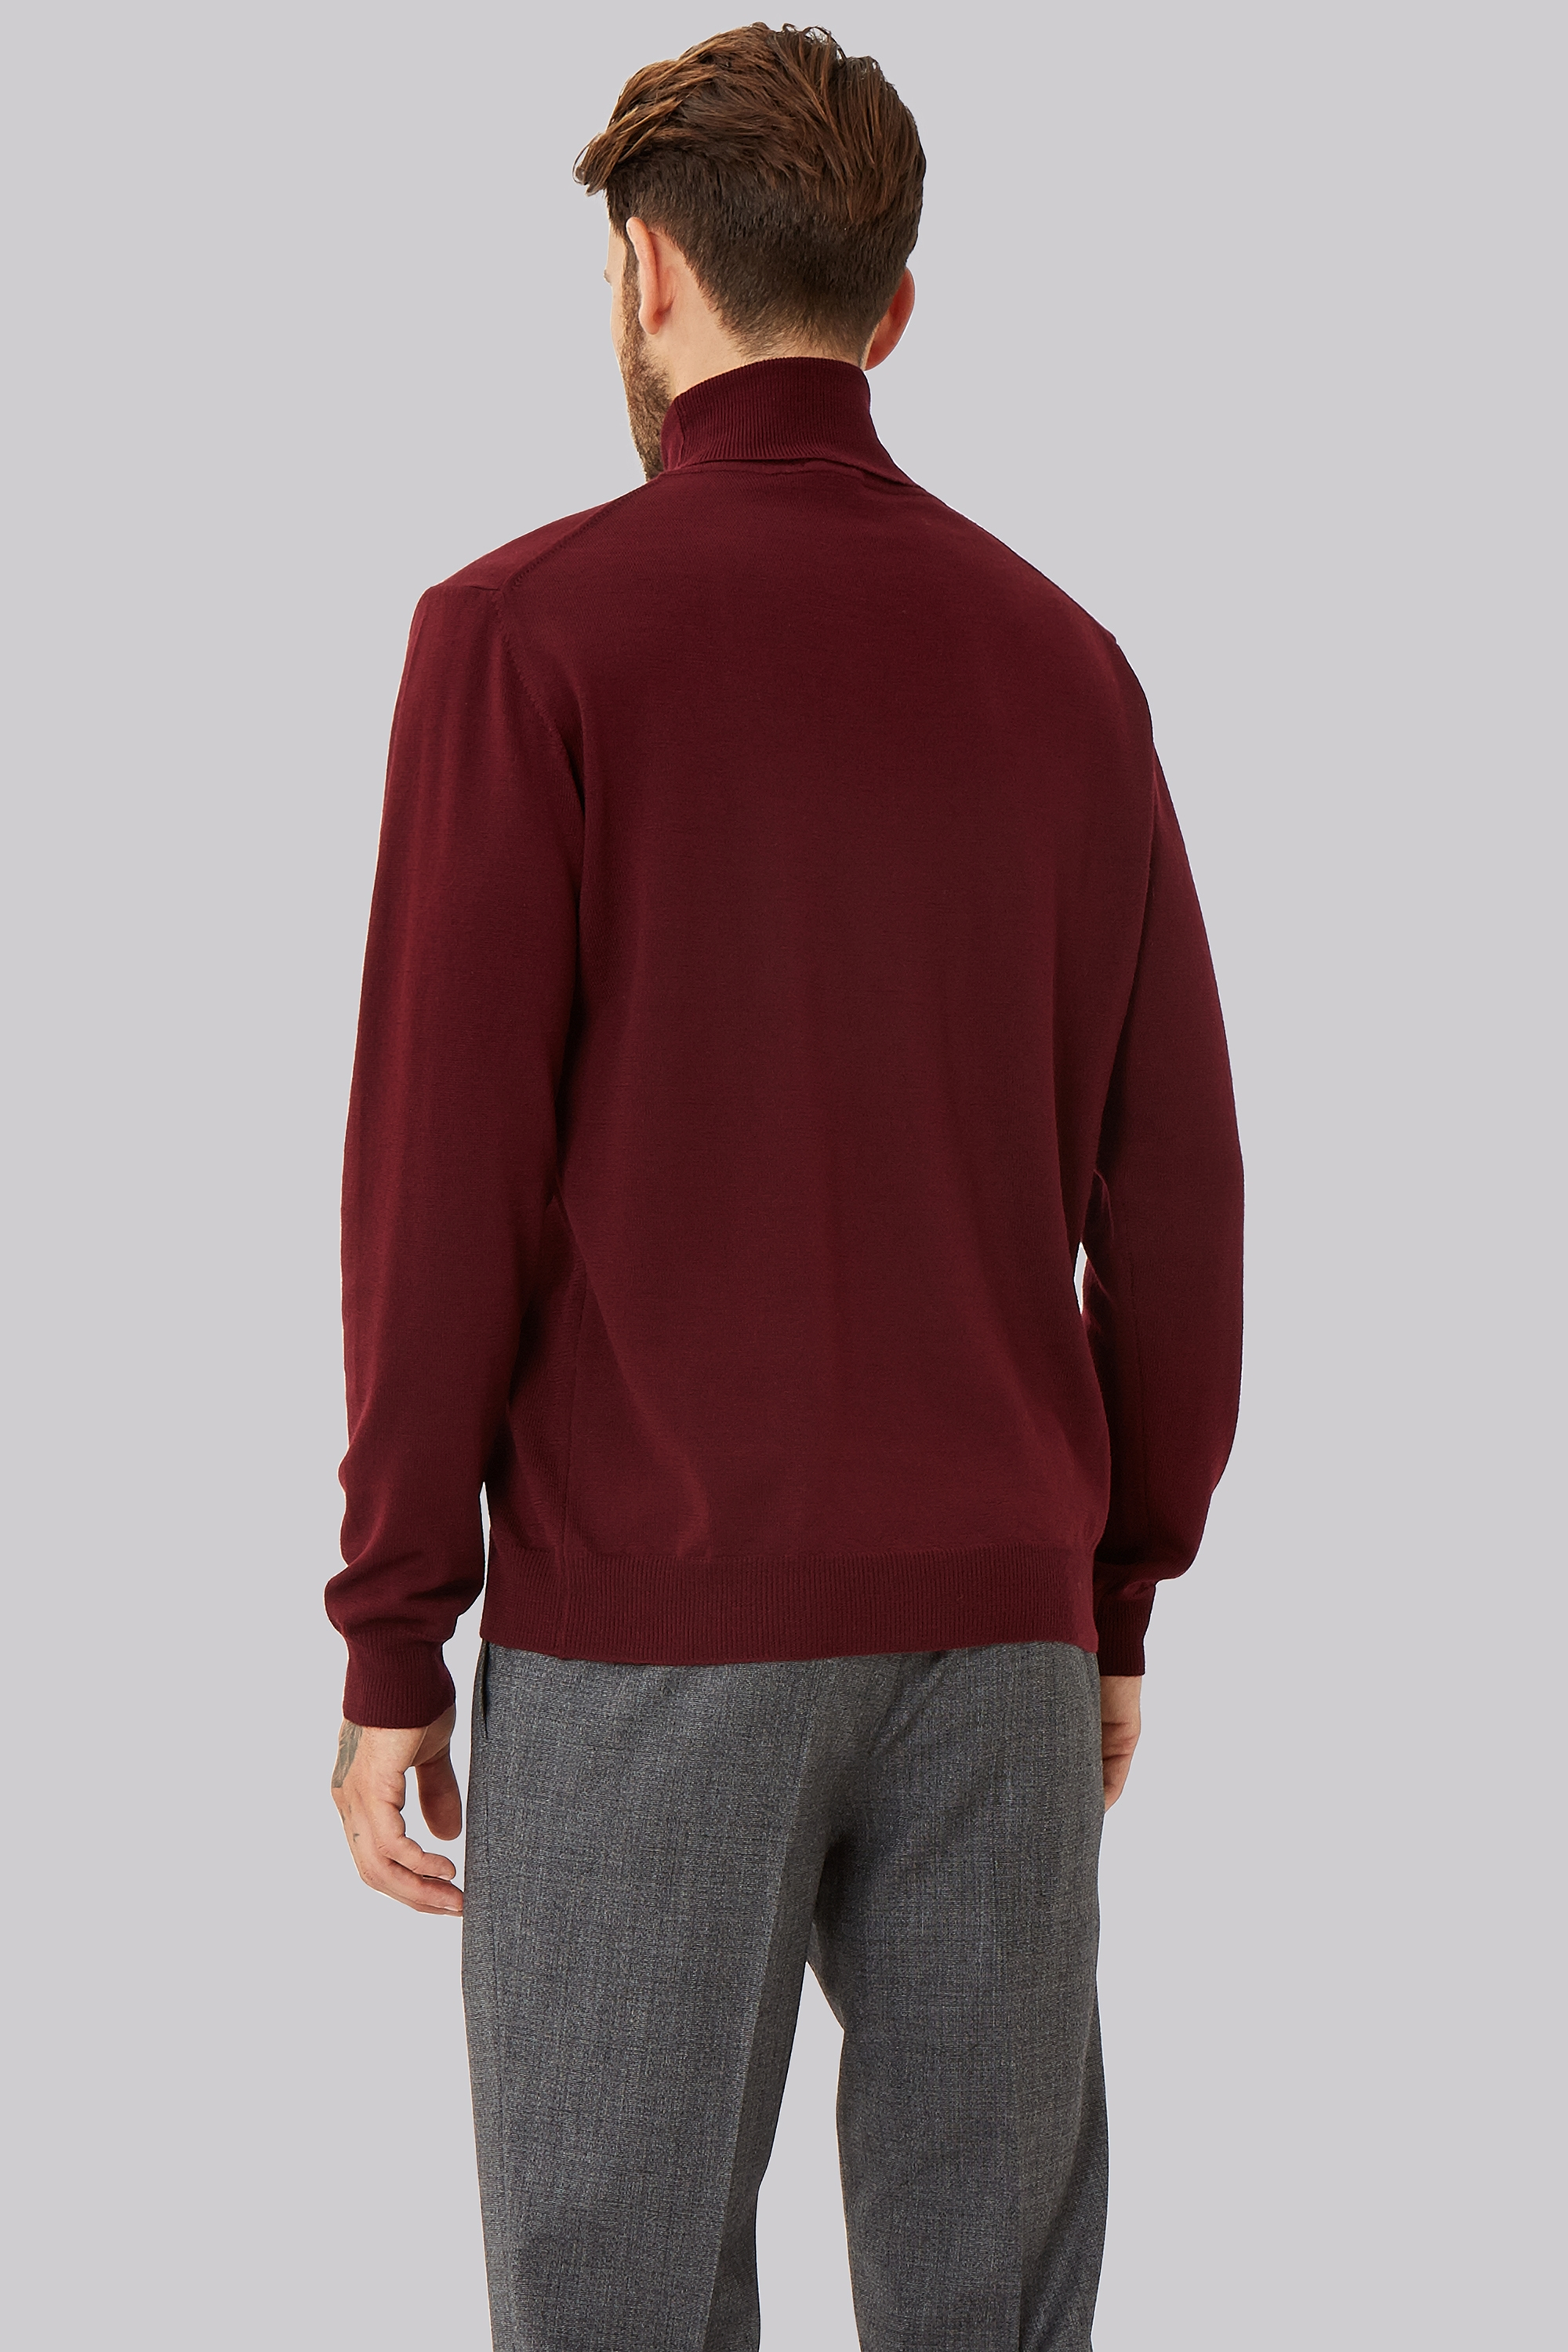 See how others are styling the Red Valentino Roll Neck Jumper. Check if your friends own the product and find other recommended products to complete the look.